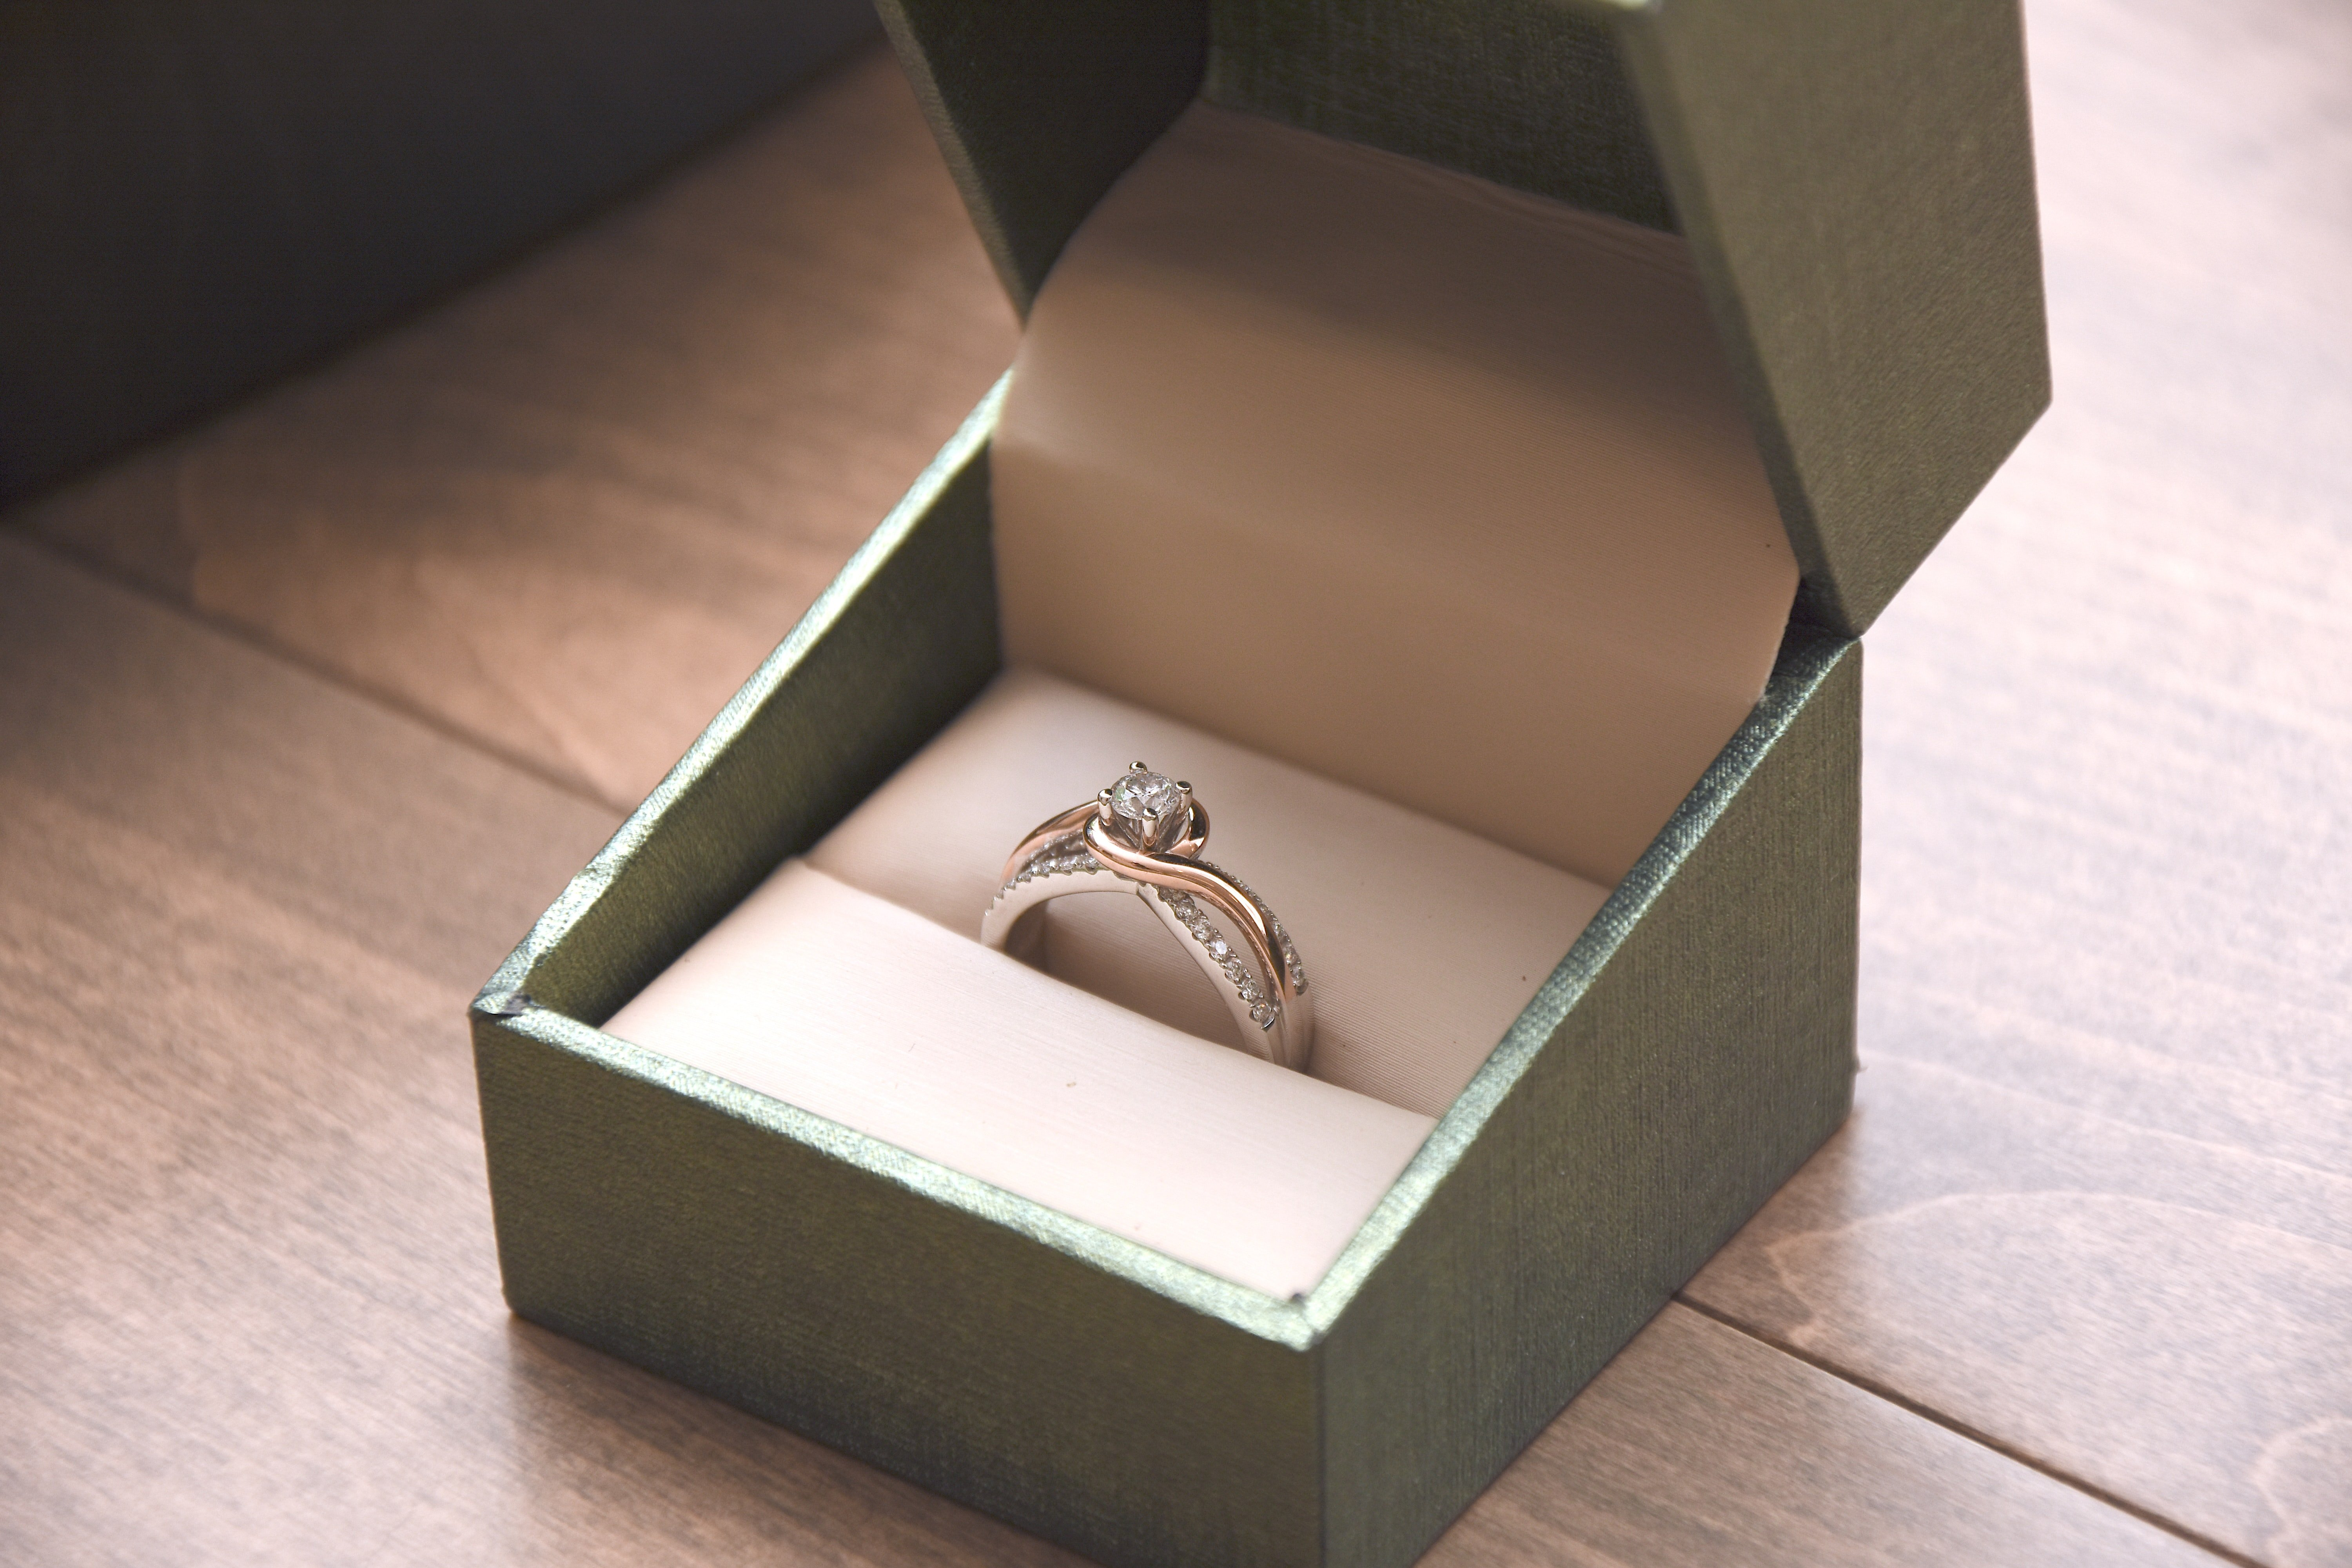 Close-up view of an engagement ring in a box    Photo: Unsplash